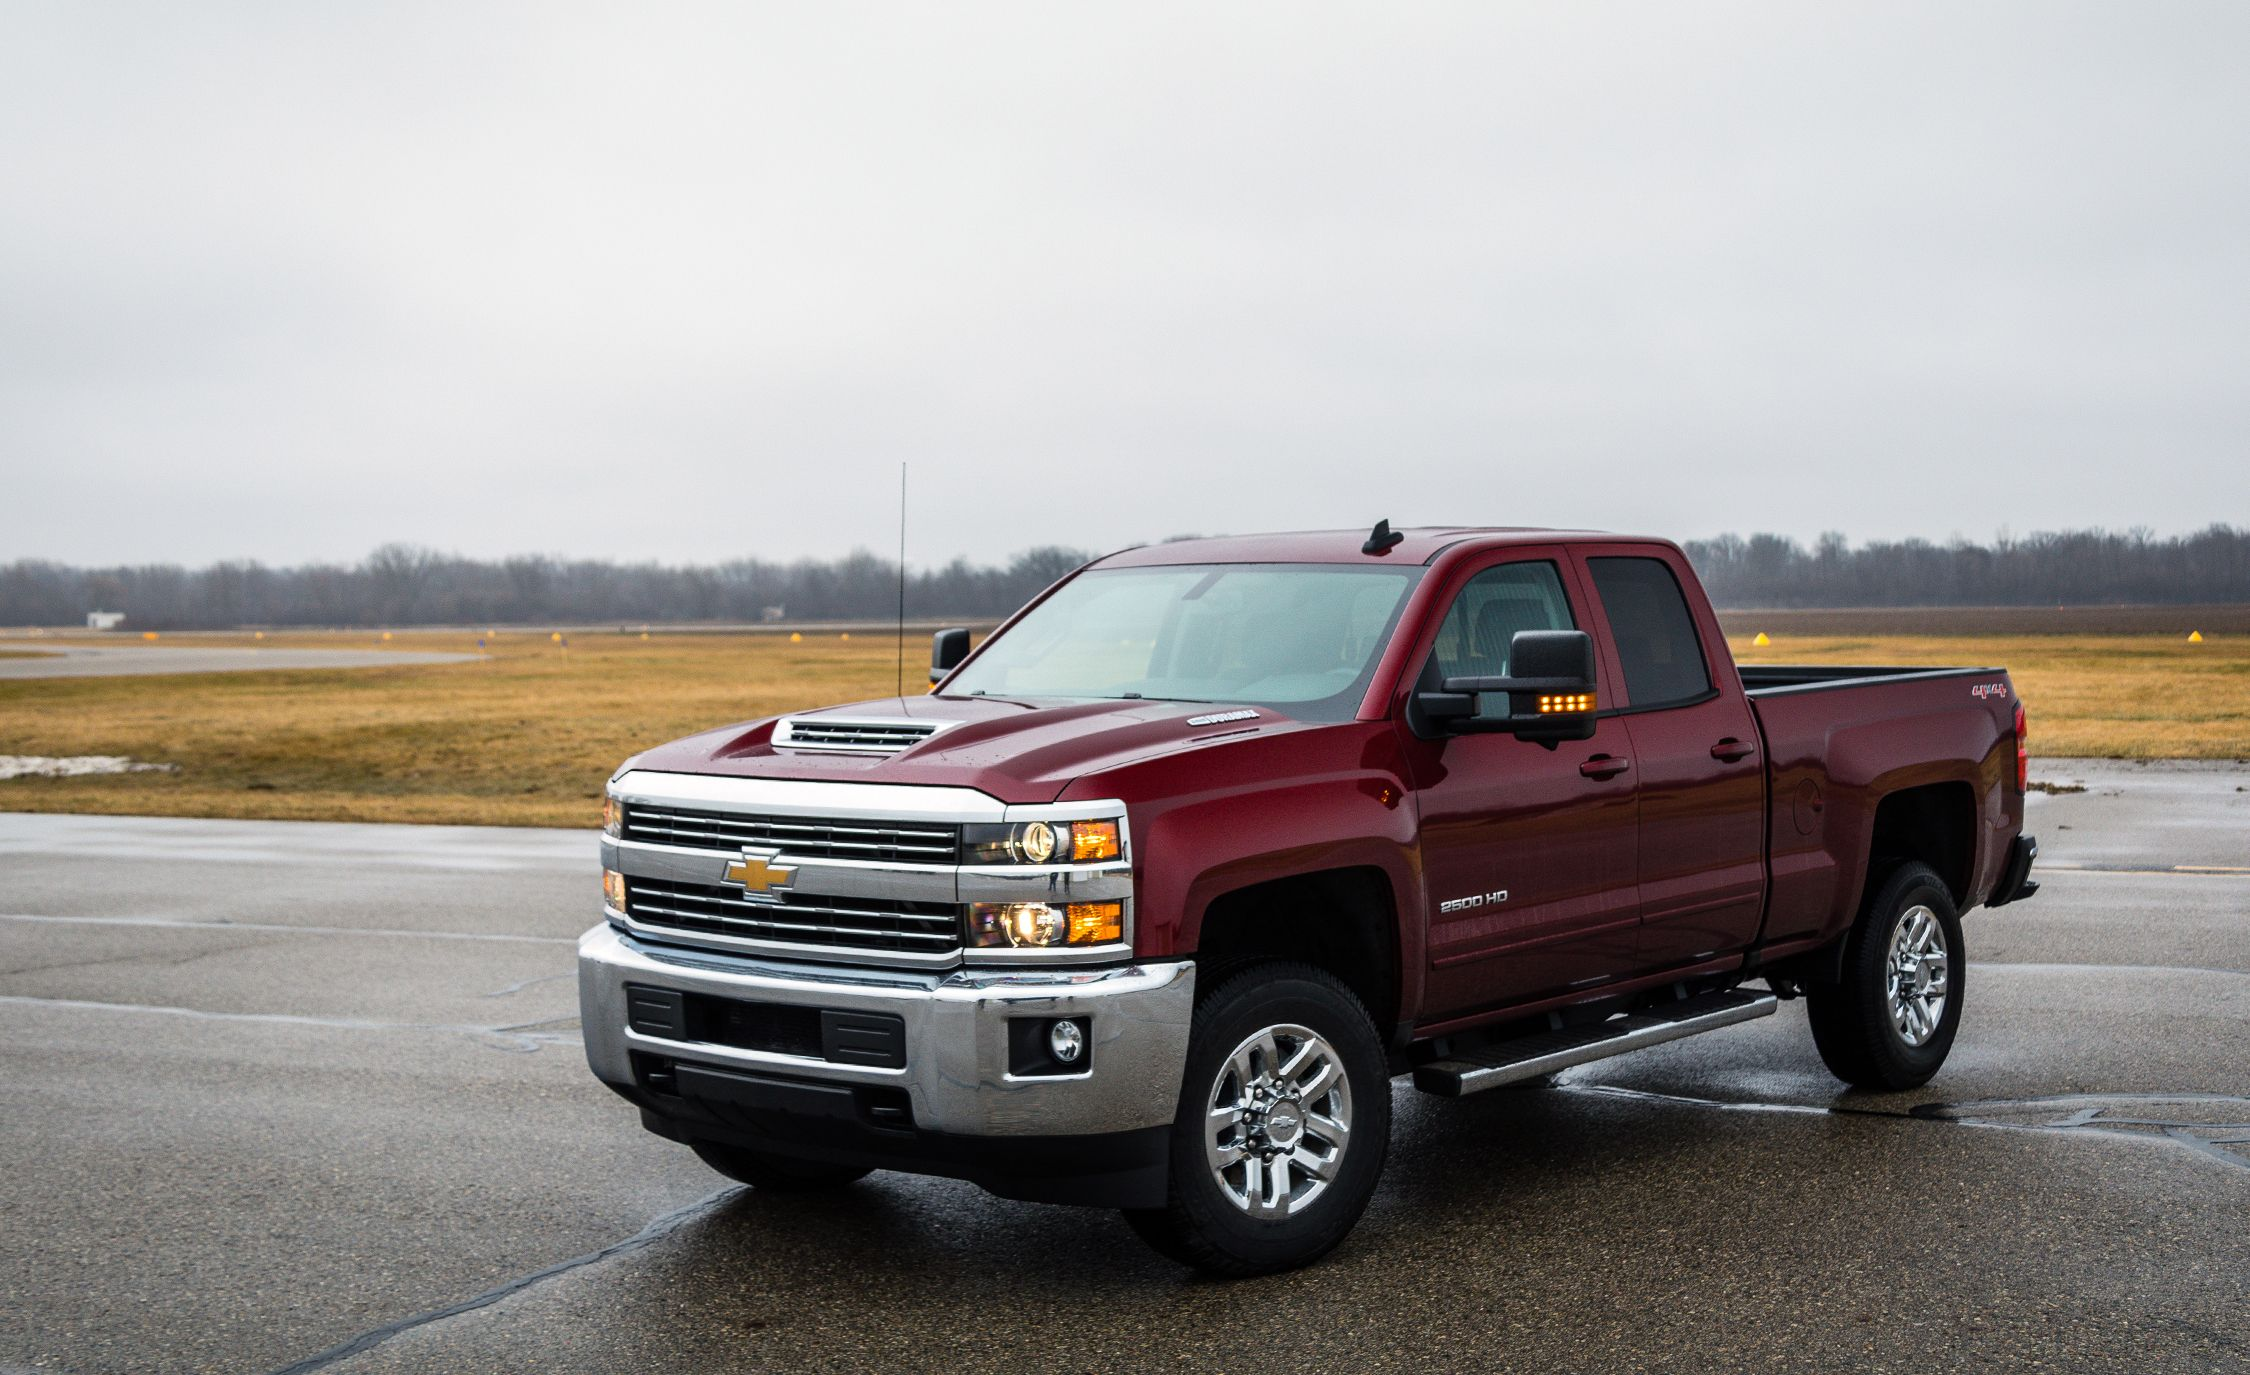 2017 Chevrolet Silverado Hd Duramax Sel Drive Review Car And Driver